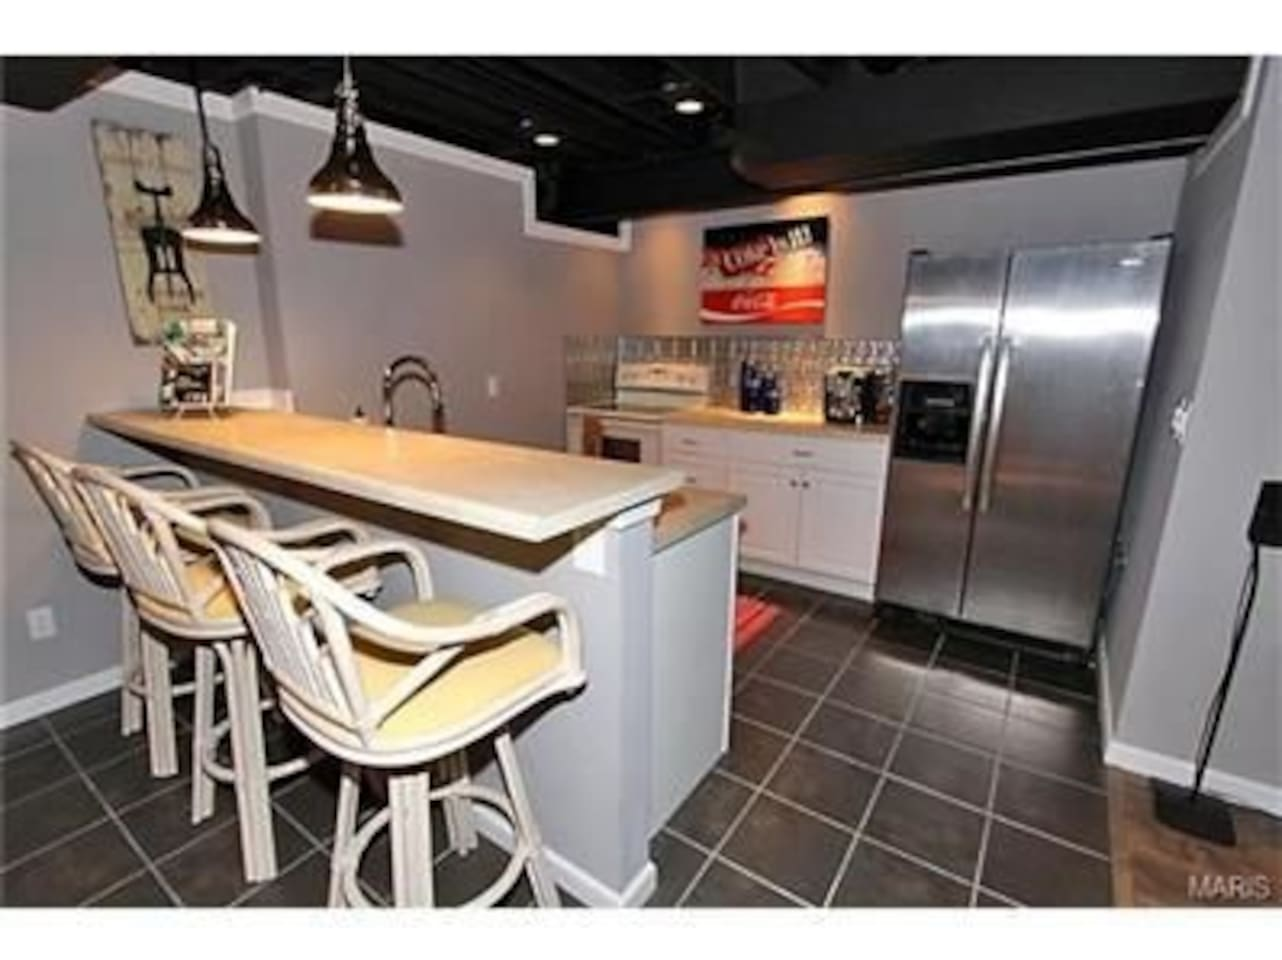 Kitchen with electric stove, Oven, Dishwasher, Microwave, Sink, Refrigerator and Cooking utensils.